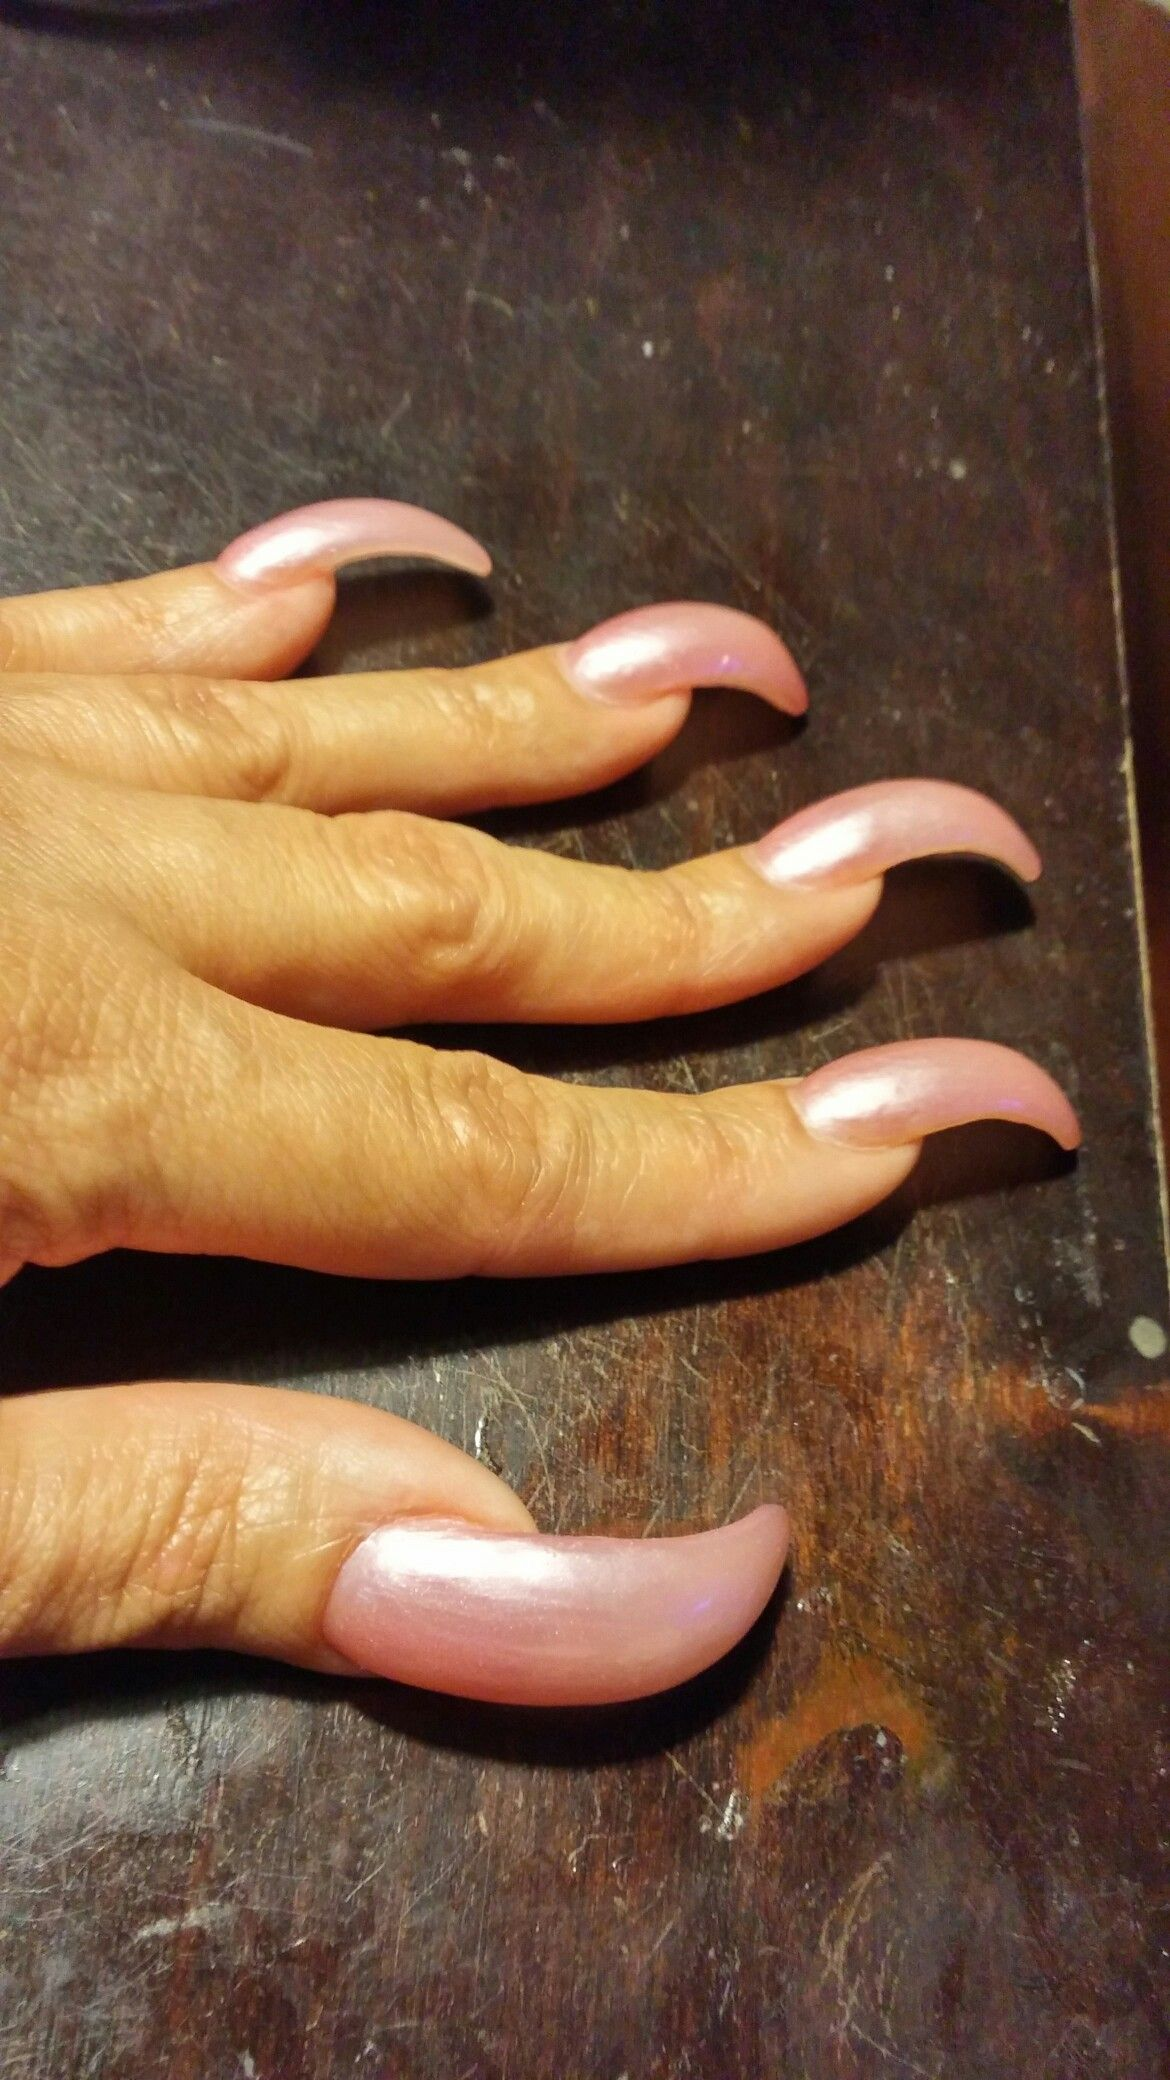 Queen luvs long curve nails | 2. Double Team + Dynamicpunch Amazing ...